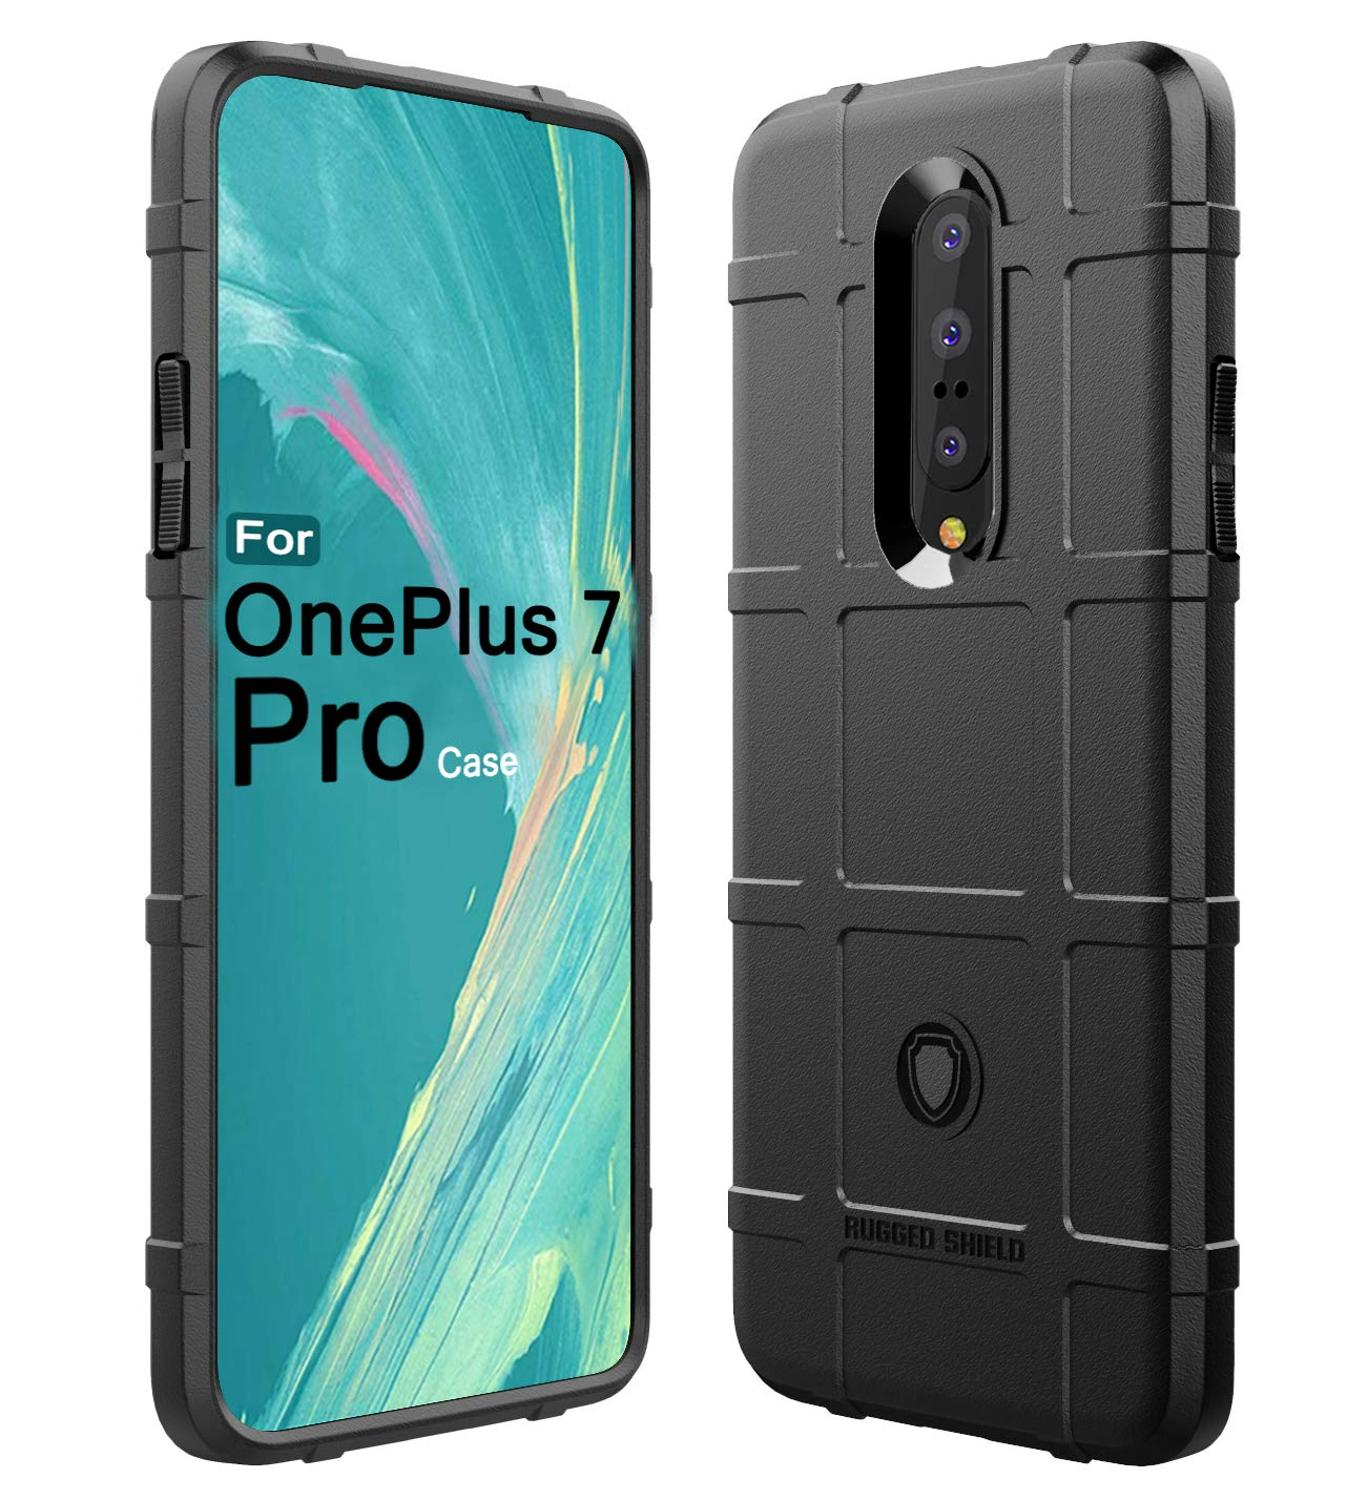 Conelz For Oneplus 7 Pro Case TPU Case Cover Shockproof Amor Case Rugged Shiled Case for Oneplus 7 6T-in Half-wrapped Cases from Cellphones & Telecommunications